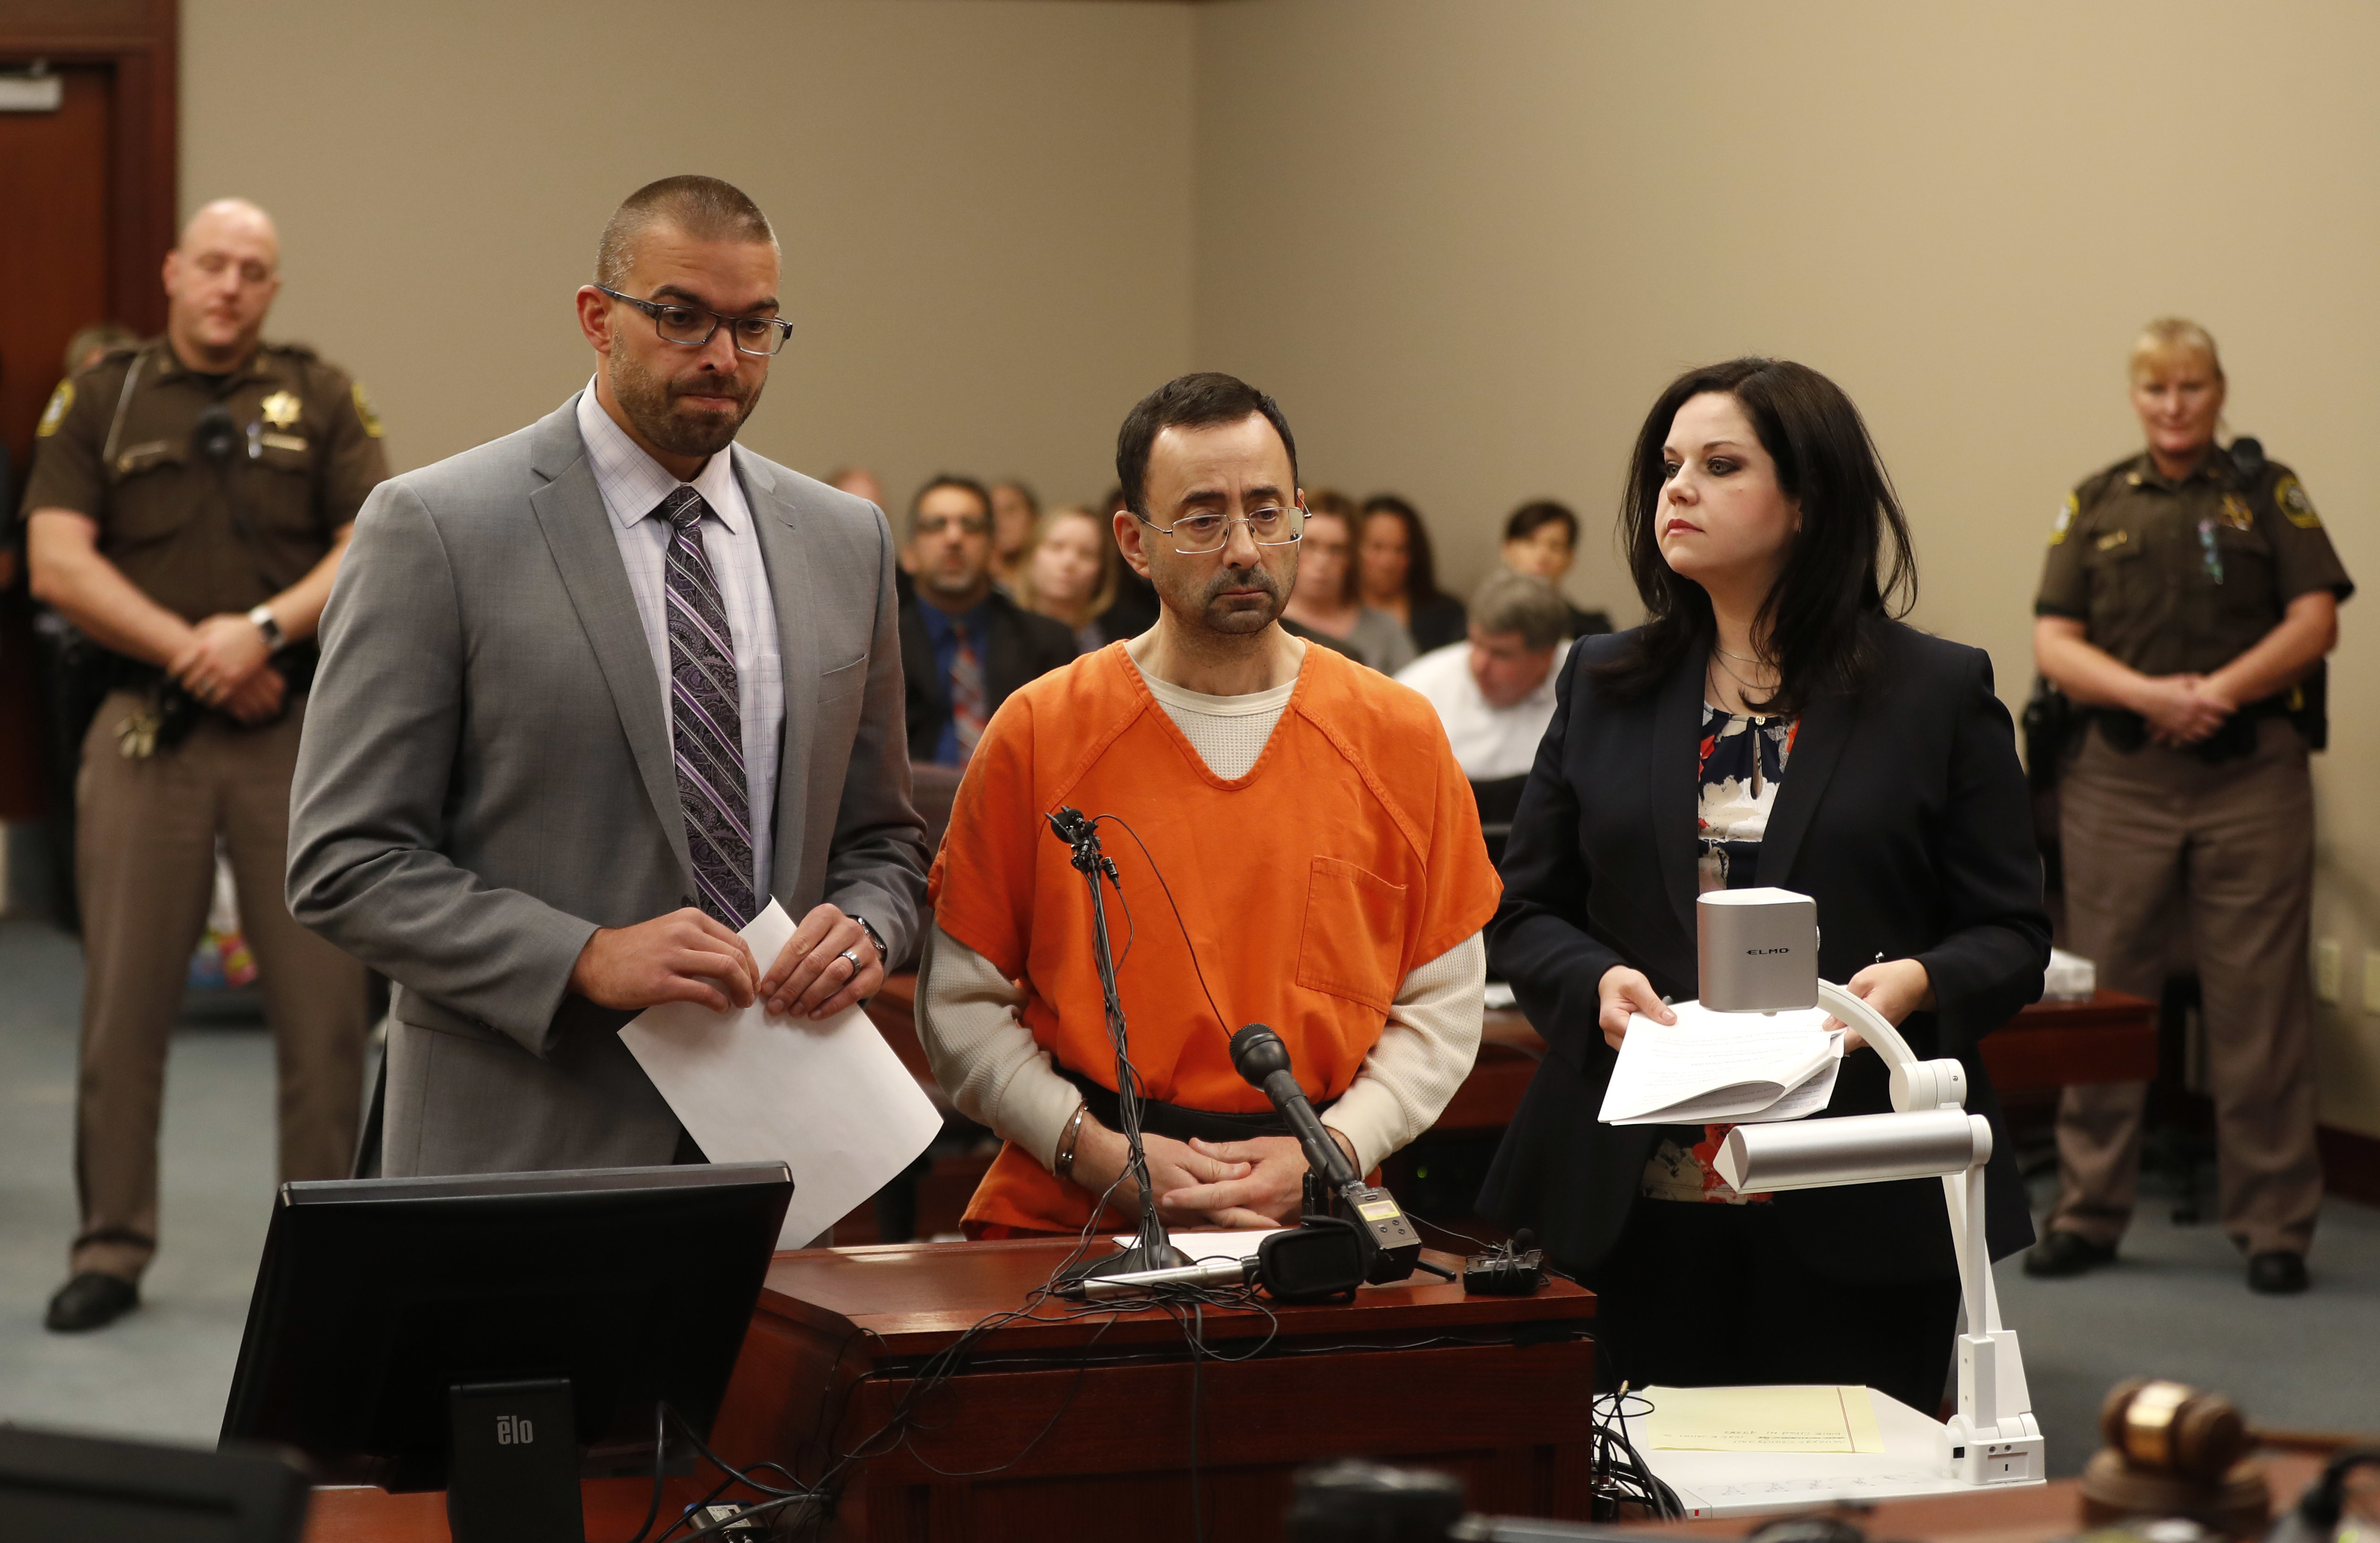 Dr. Larry Nassar, 54, appears in court for a plea hearing inMichigan on Nov. 22, 2017. Nassar, a sports doctor accused of molesting girls while working for USA Gymnastics and Michigan State University, pleaded guilty to multiple charges of sexual assault and will face at least 25 years in prison.